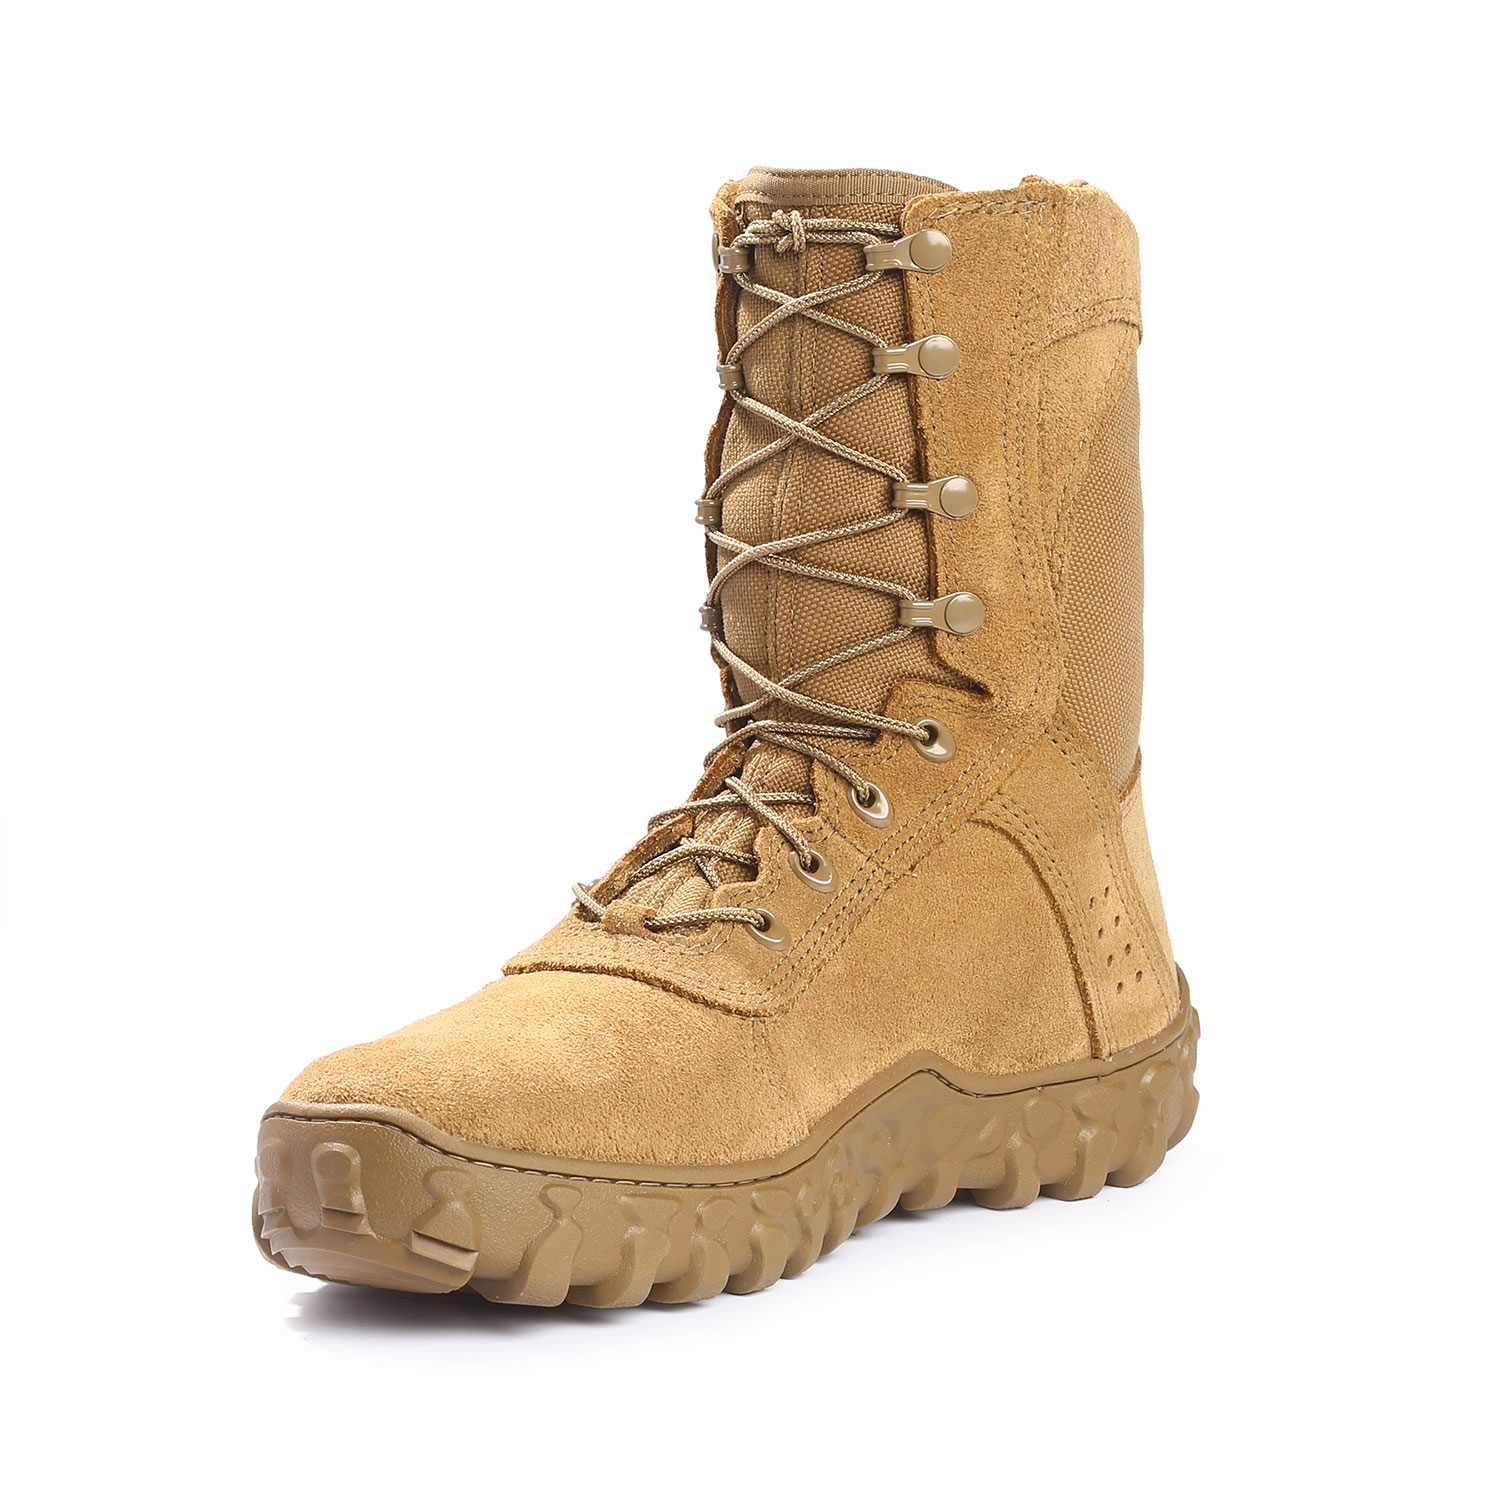 ef3bed800ad Rocky S2V Tactical Military Boot.